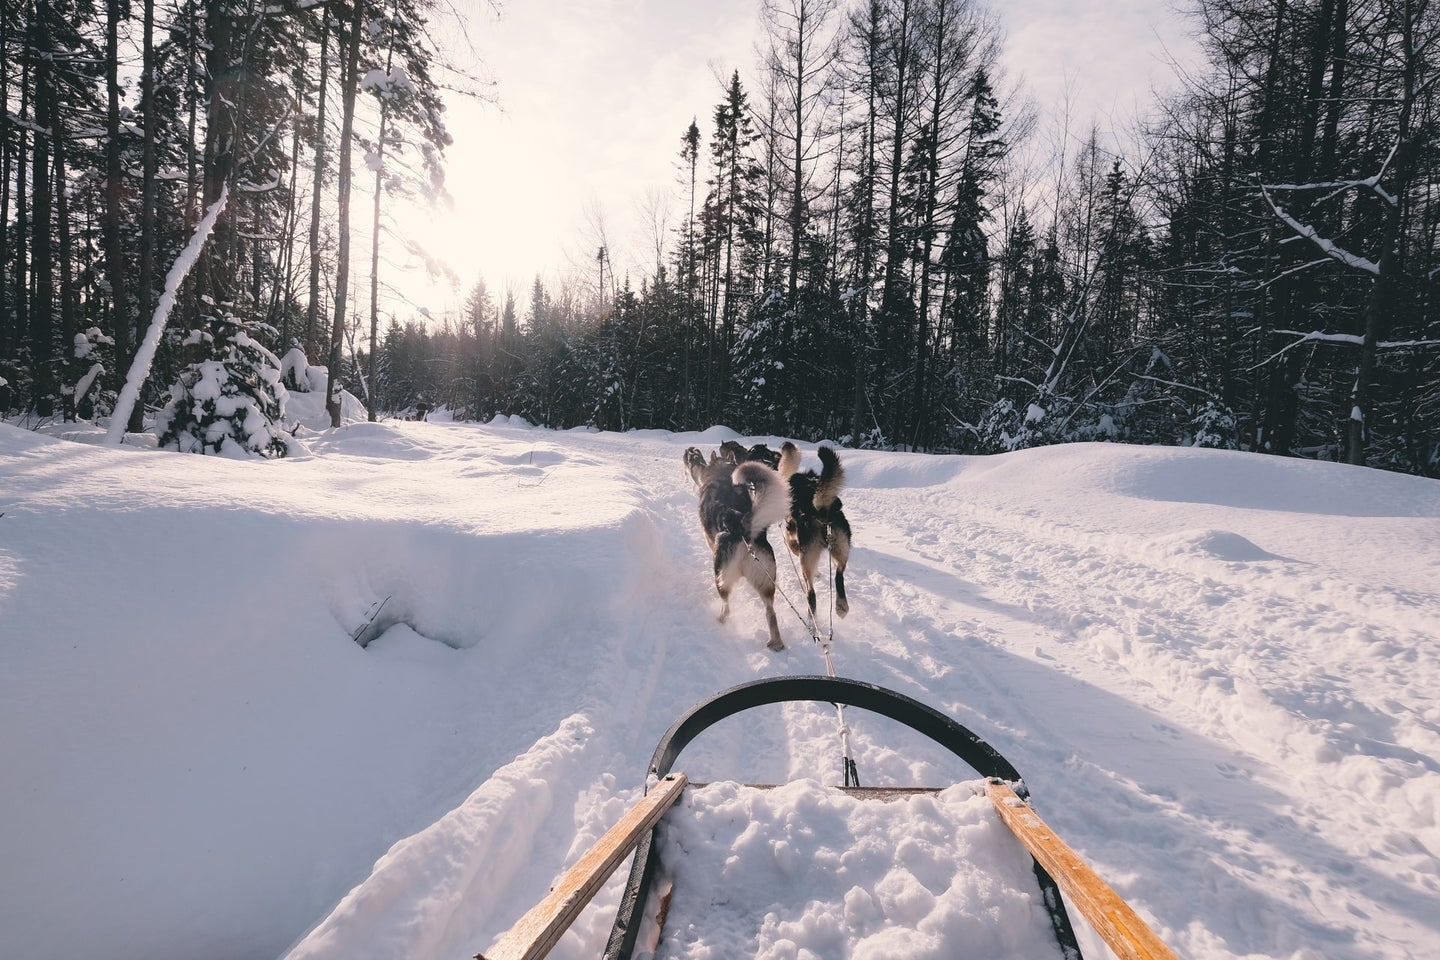 Sled pulled by dogs.